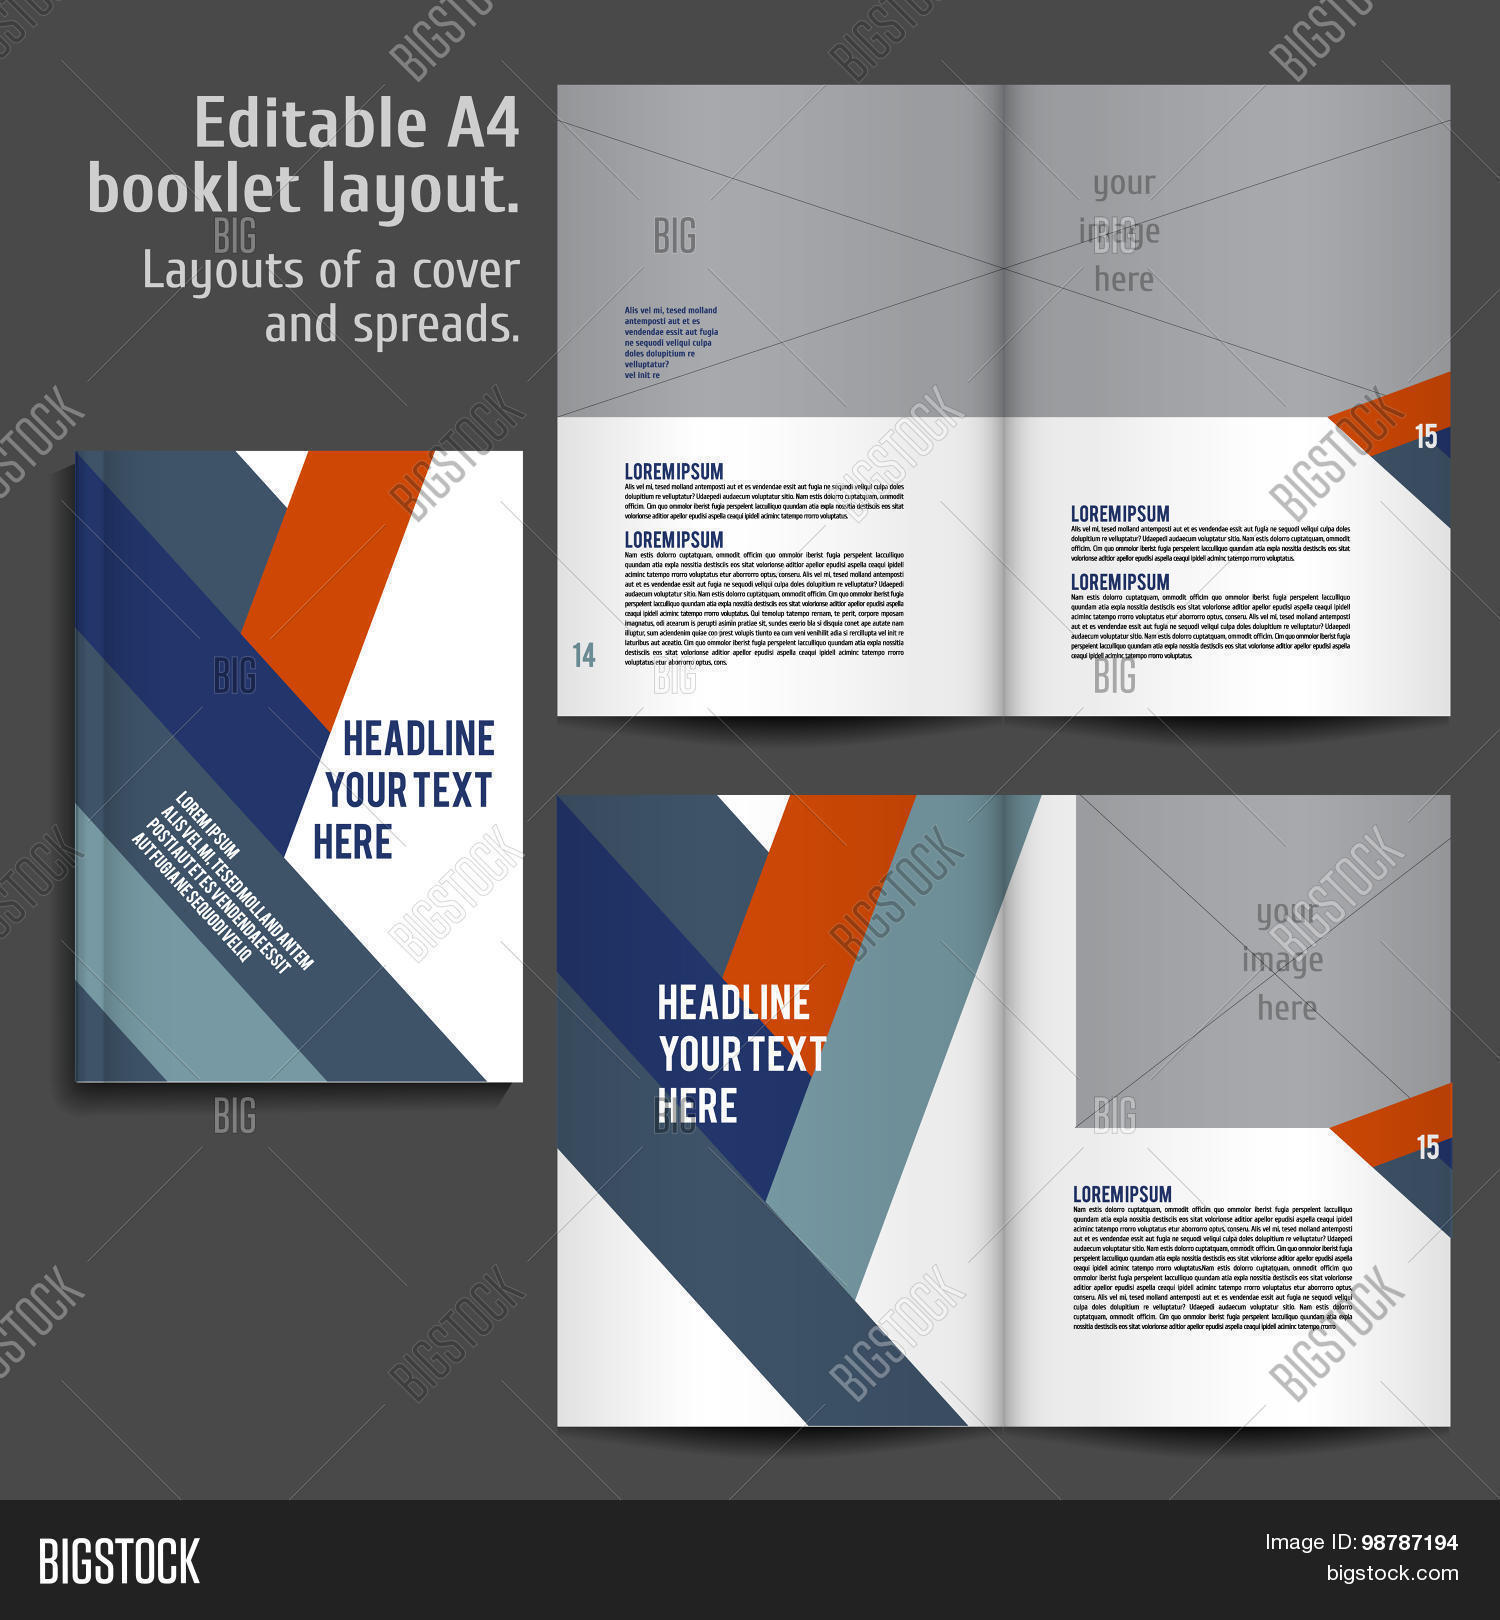 A4 Book Layout Design Vector & Photo (Free Trial) | Bigstock